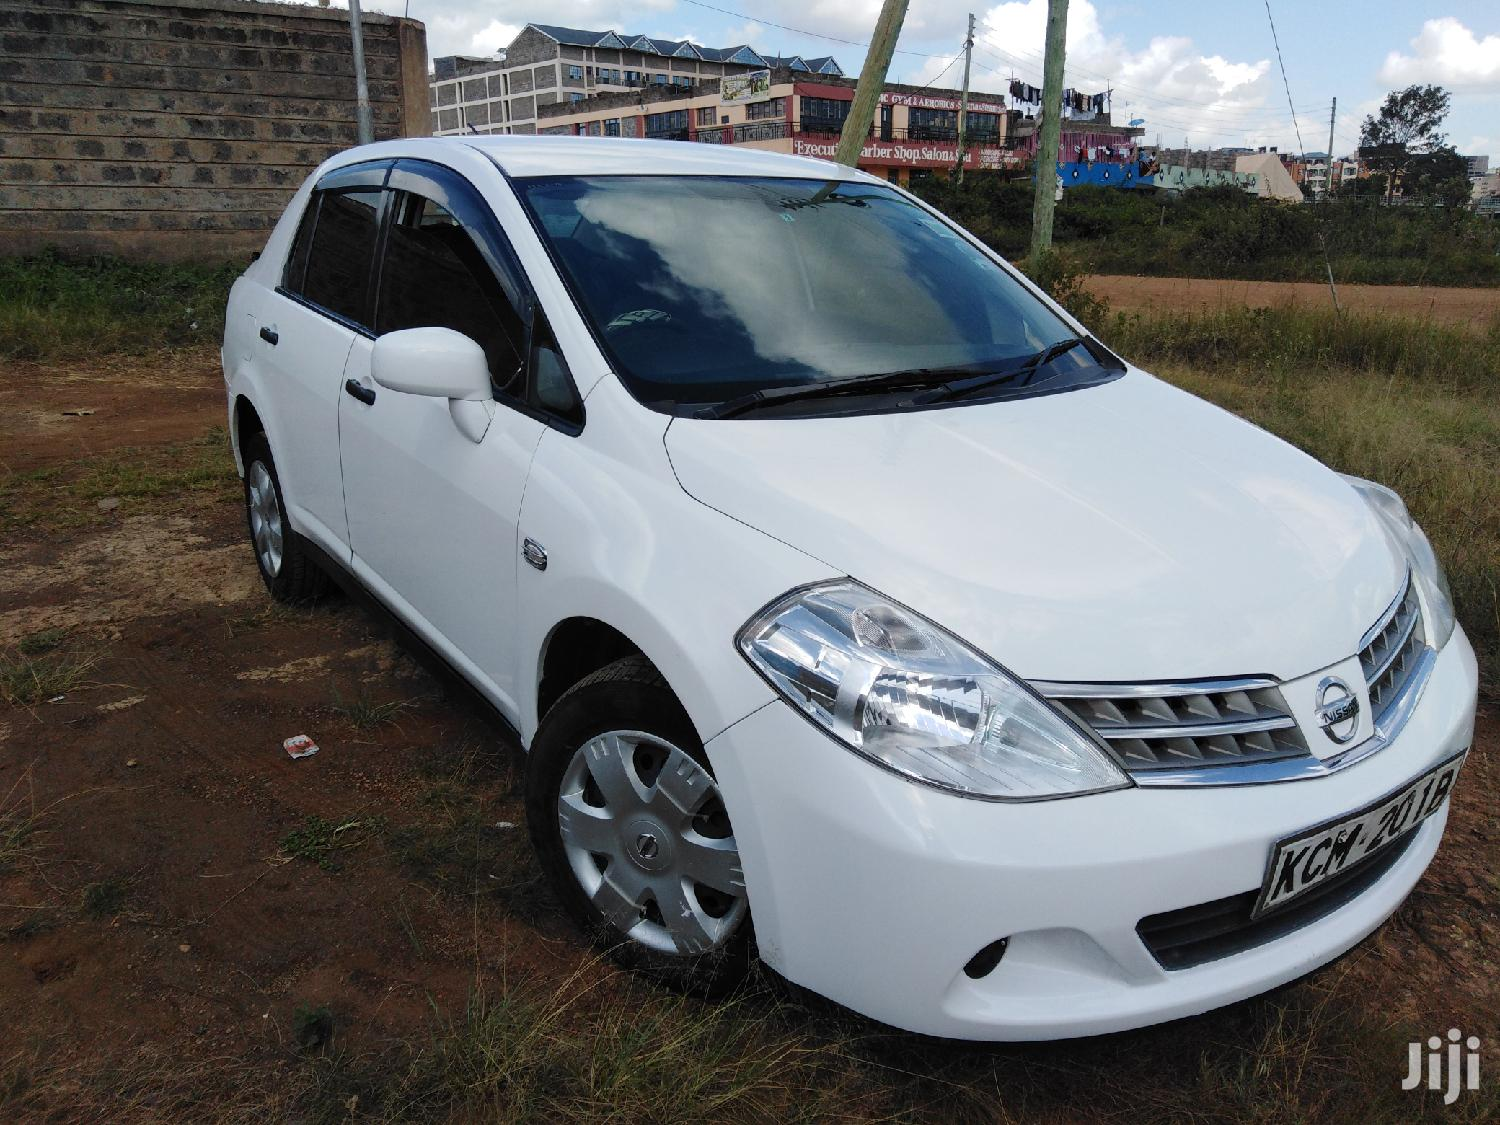 Archive: Nissan Tiida 2010 White